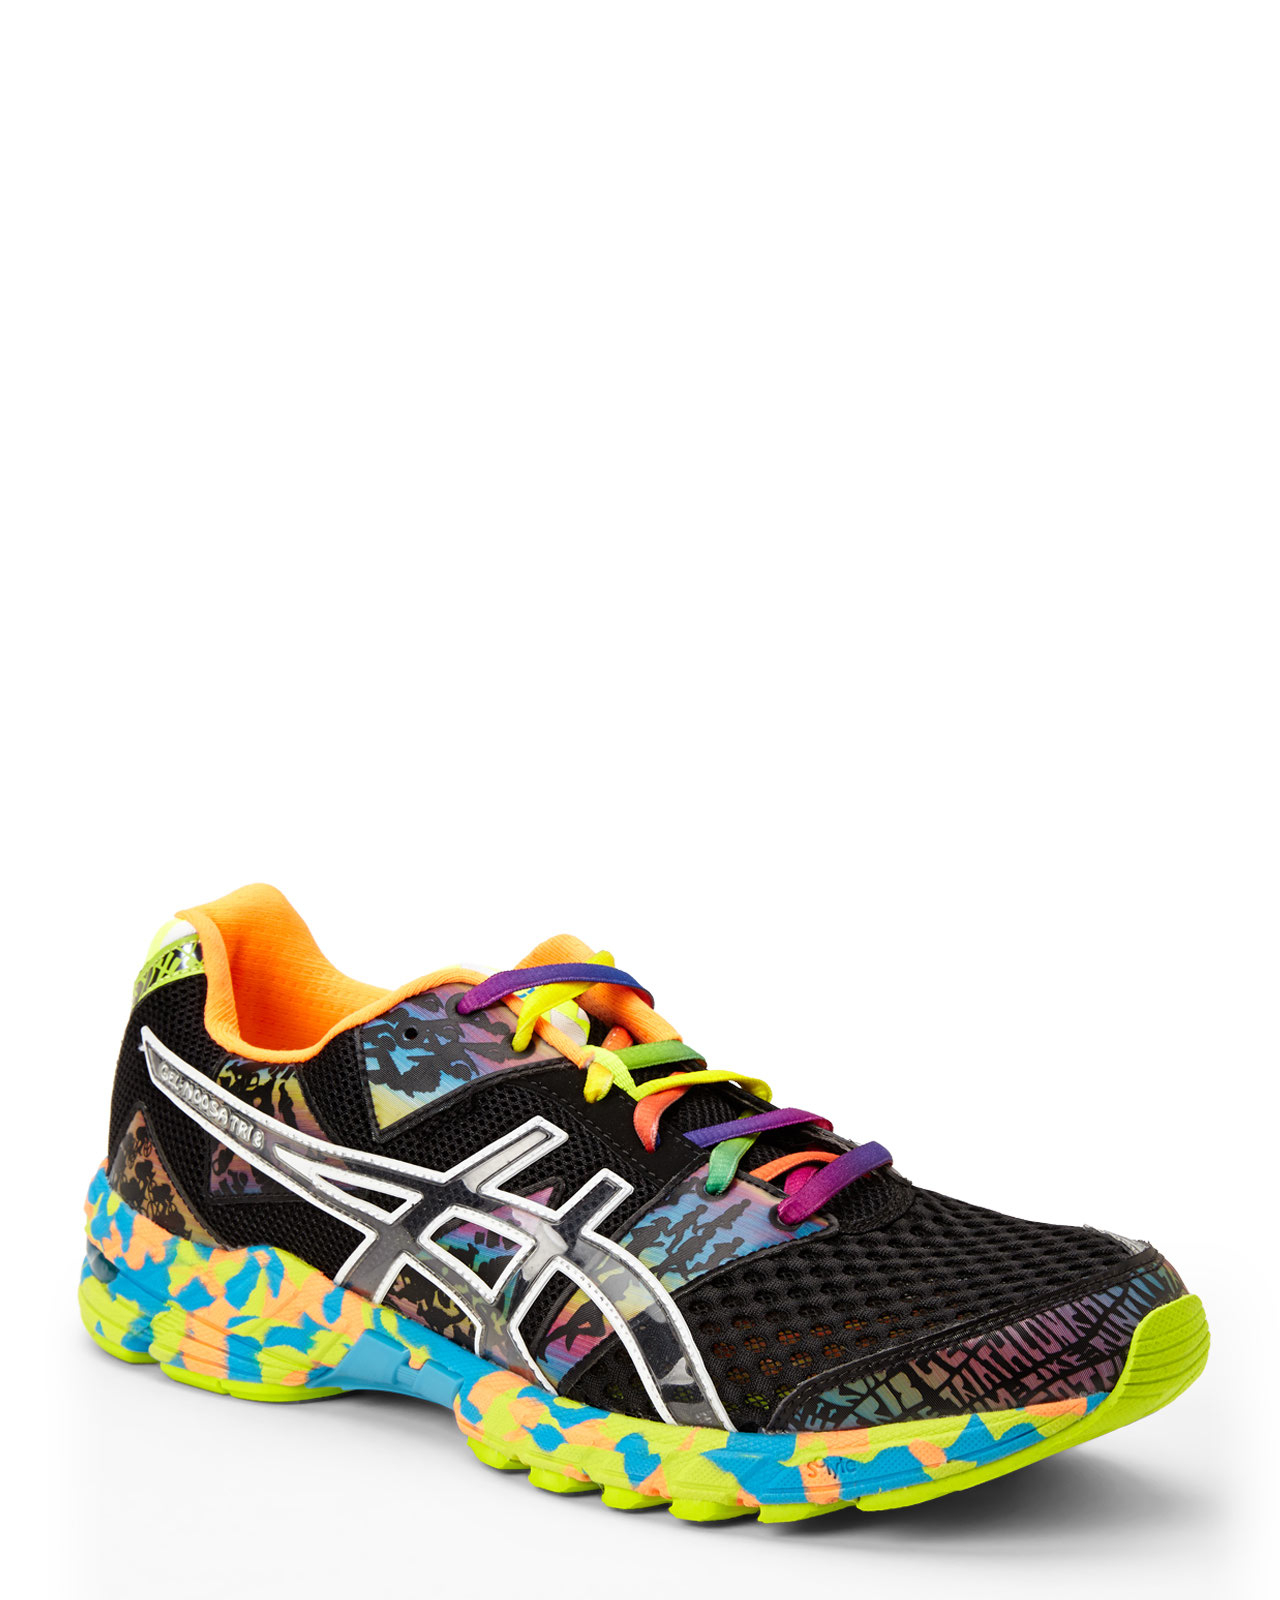 Black Gel Nails With One Silver Glitter Nail: Asics Black & Multicolor Gel-Noosa Tri 8 Sneakers In Black